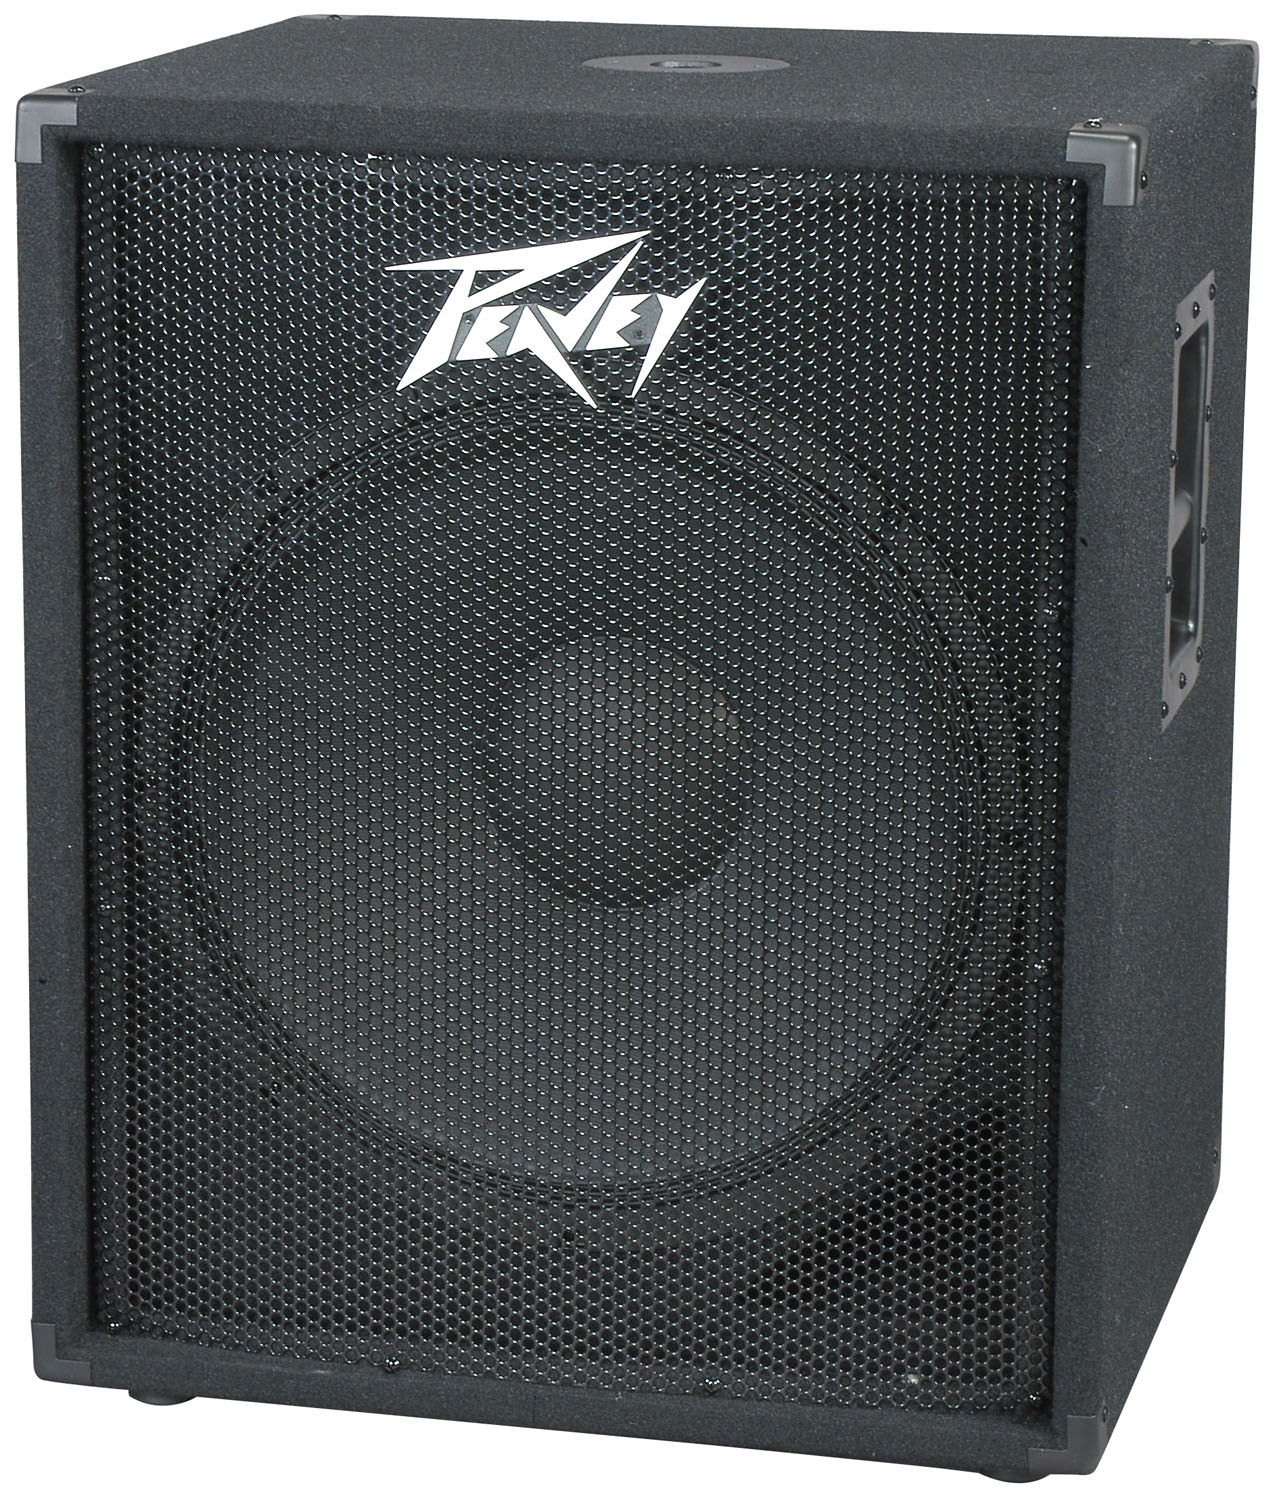 peavey pv 118 pro audio dj passive 18 sub 400w subwoofer. Black Bedroom Furniture Sets. Home Design Ideas